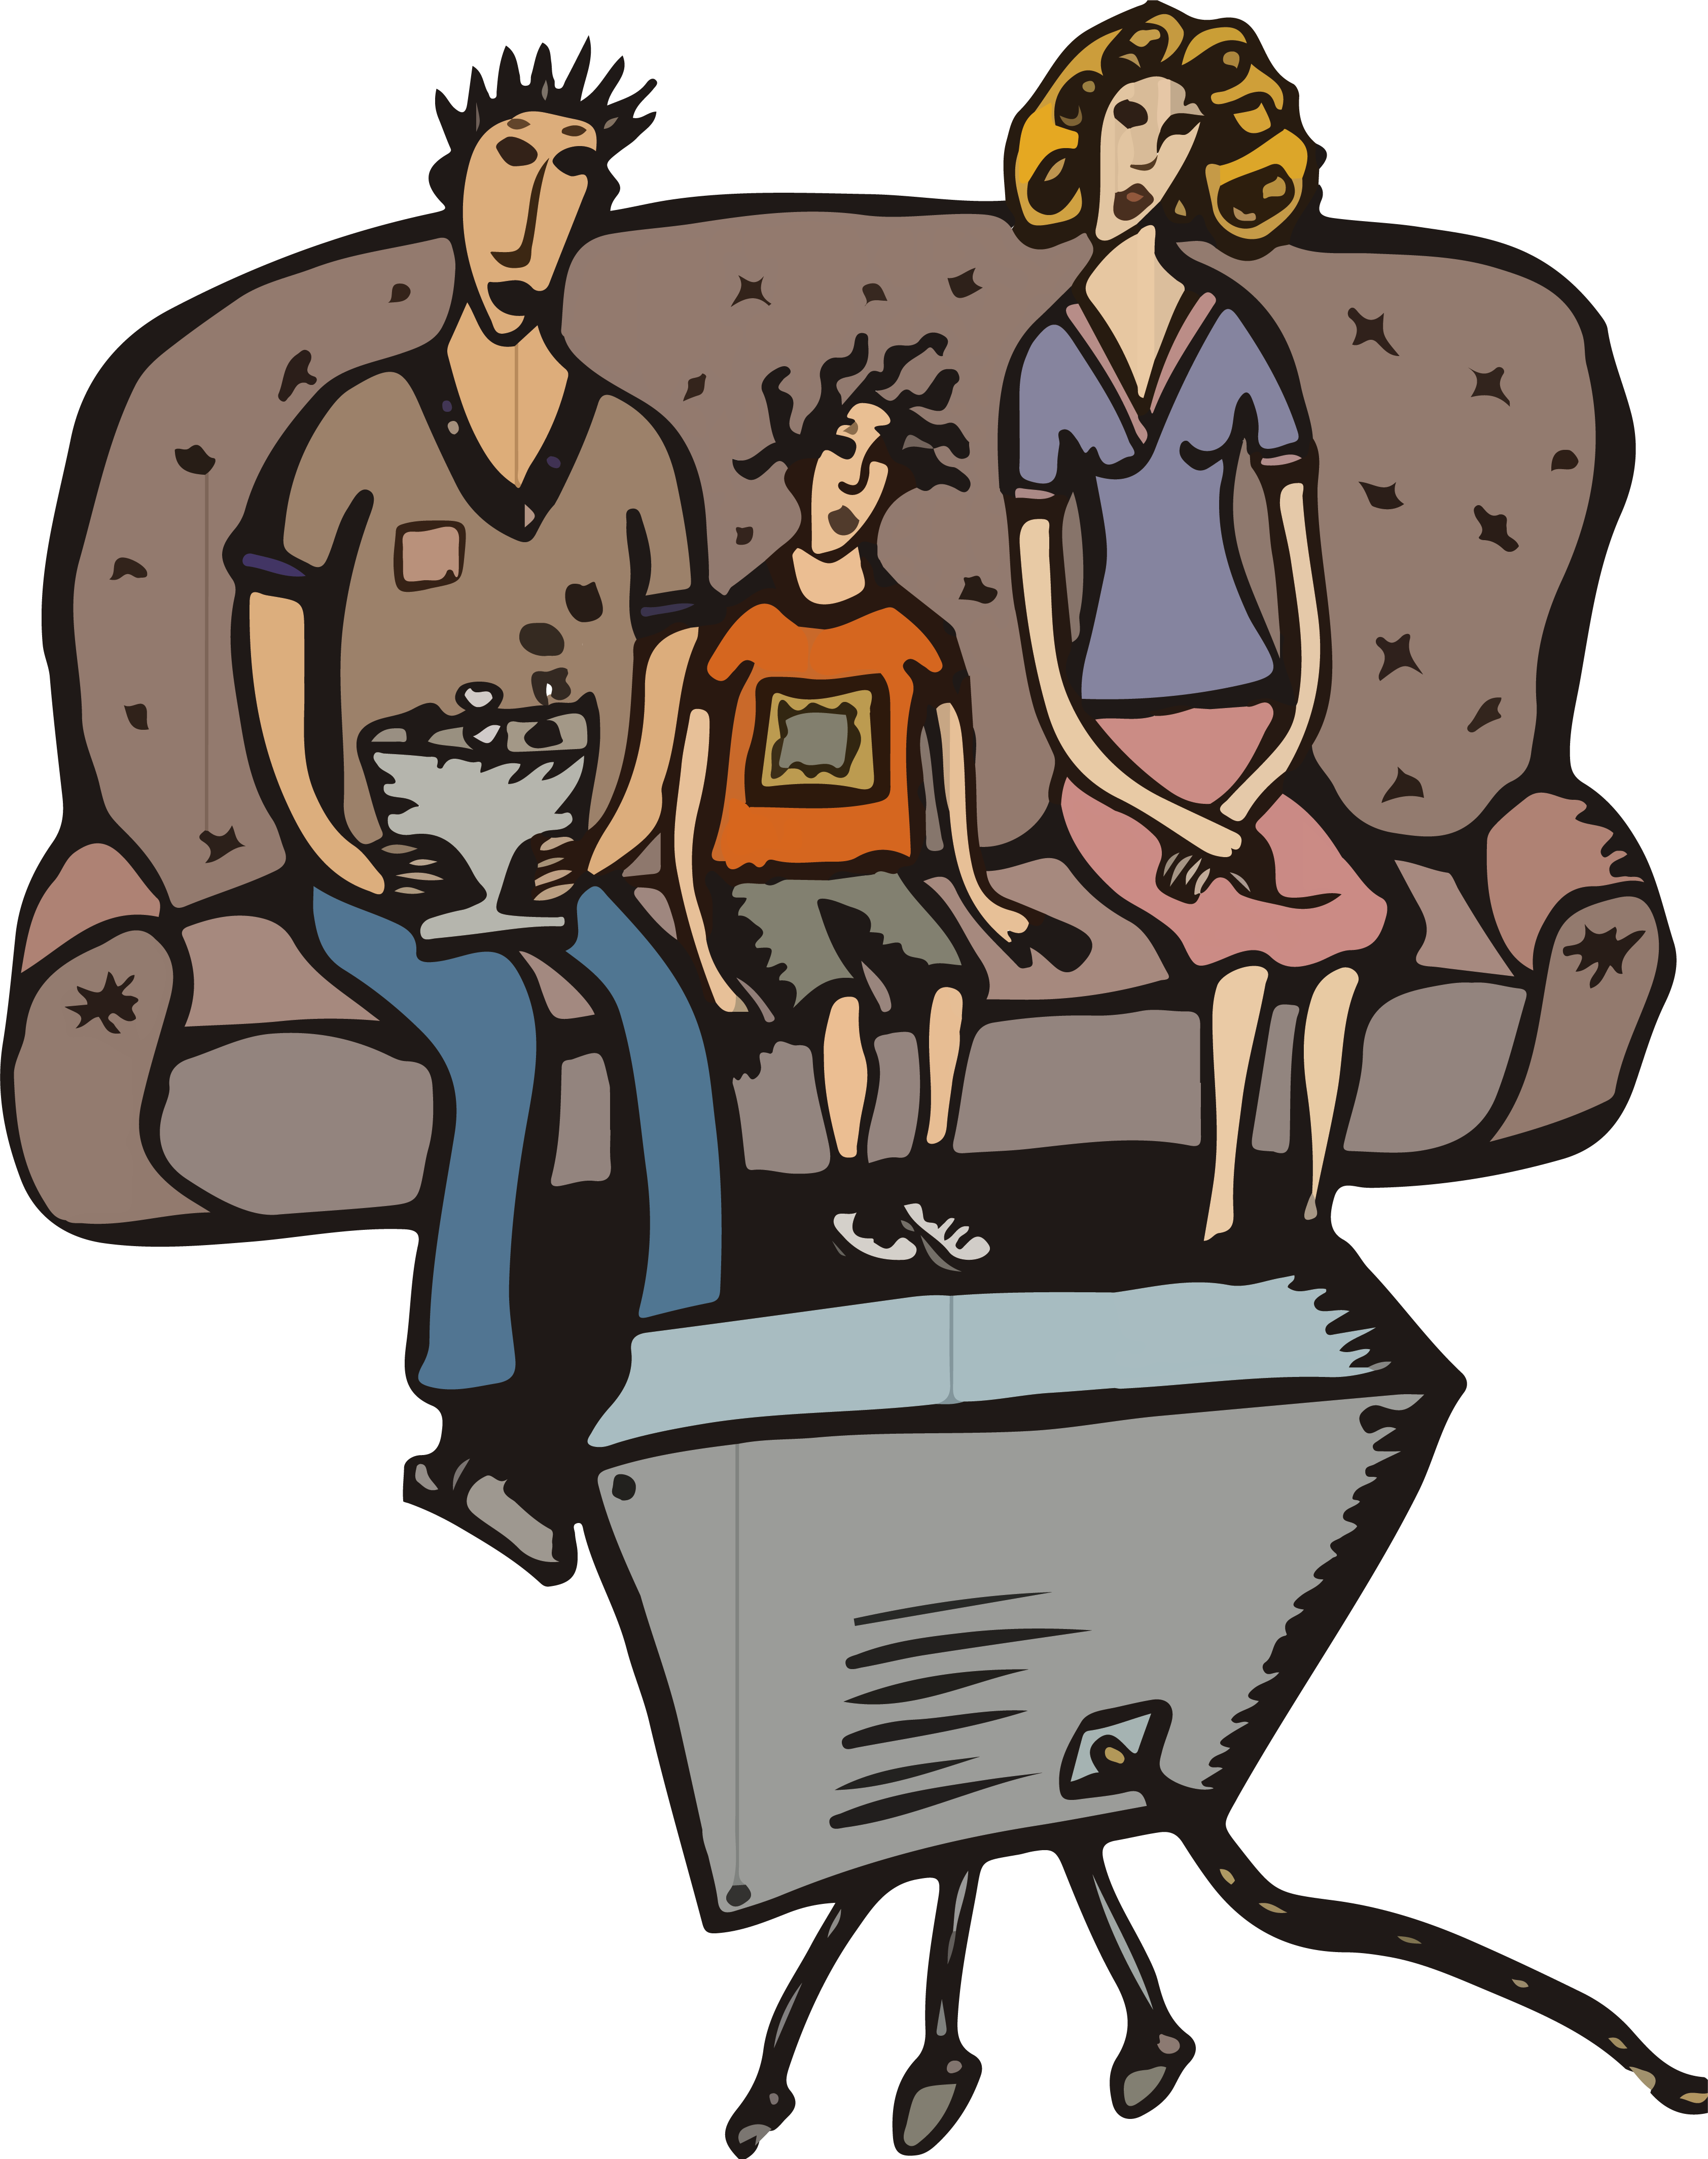 Watch png cartoon. Television illustration a family